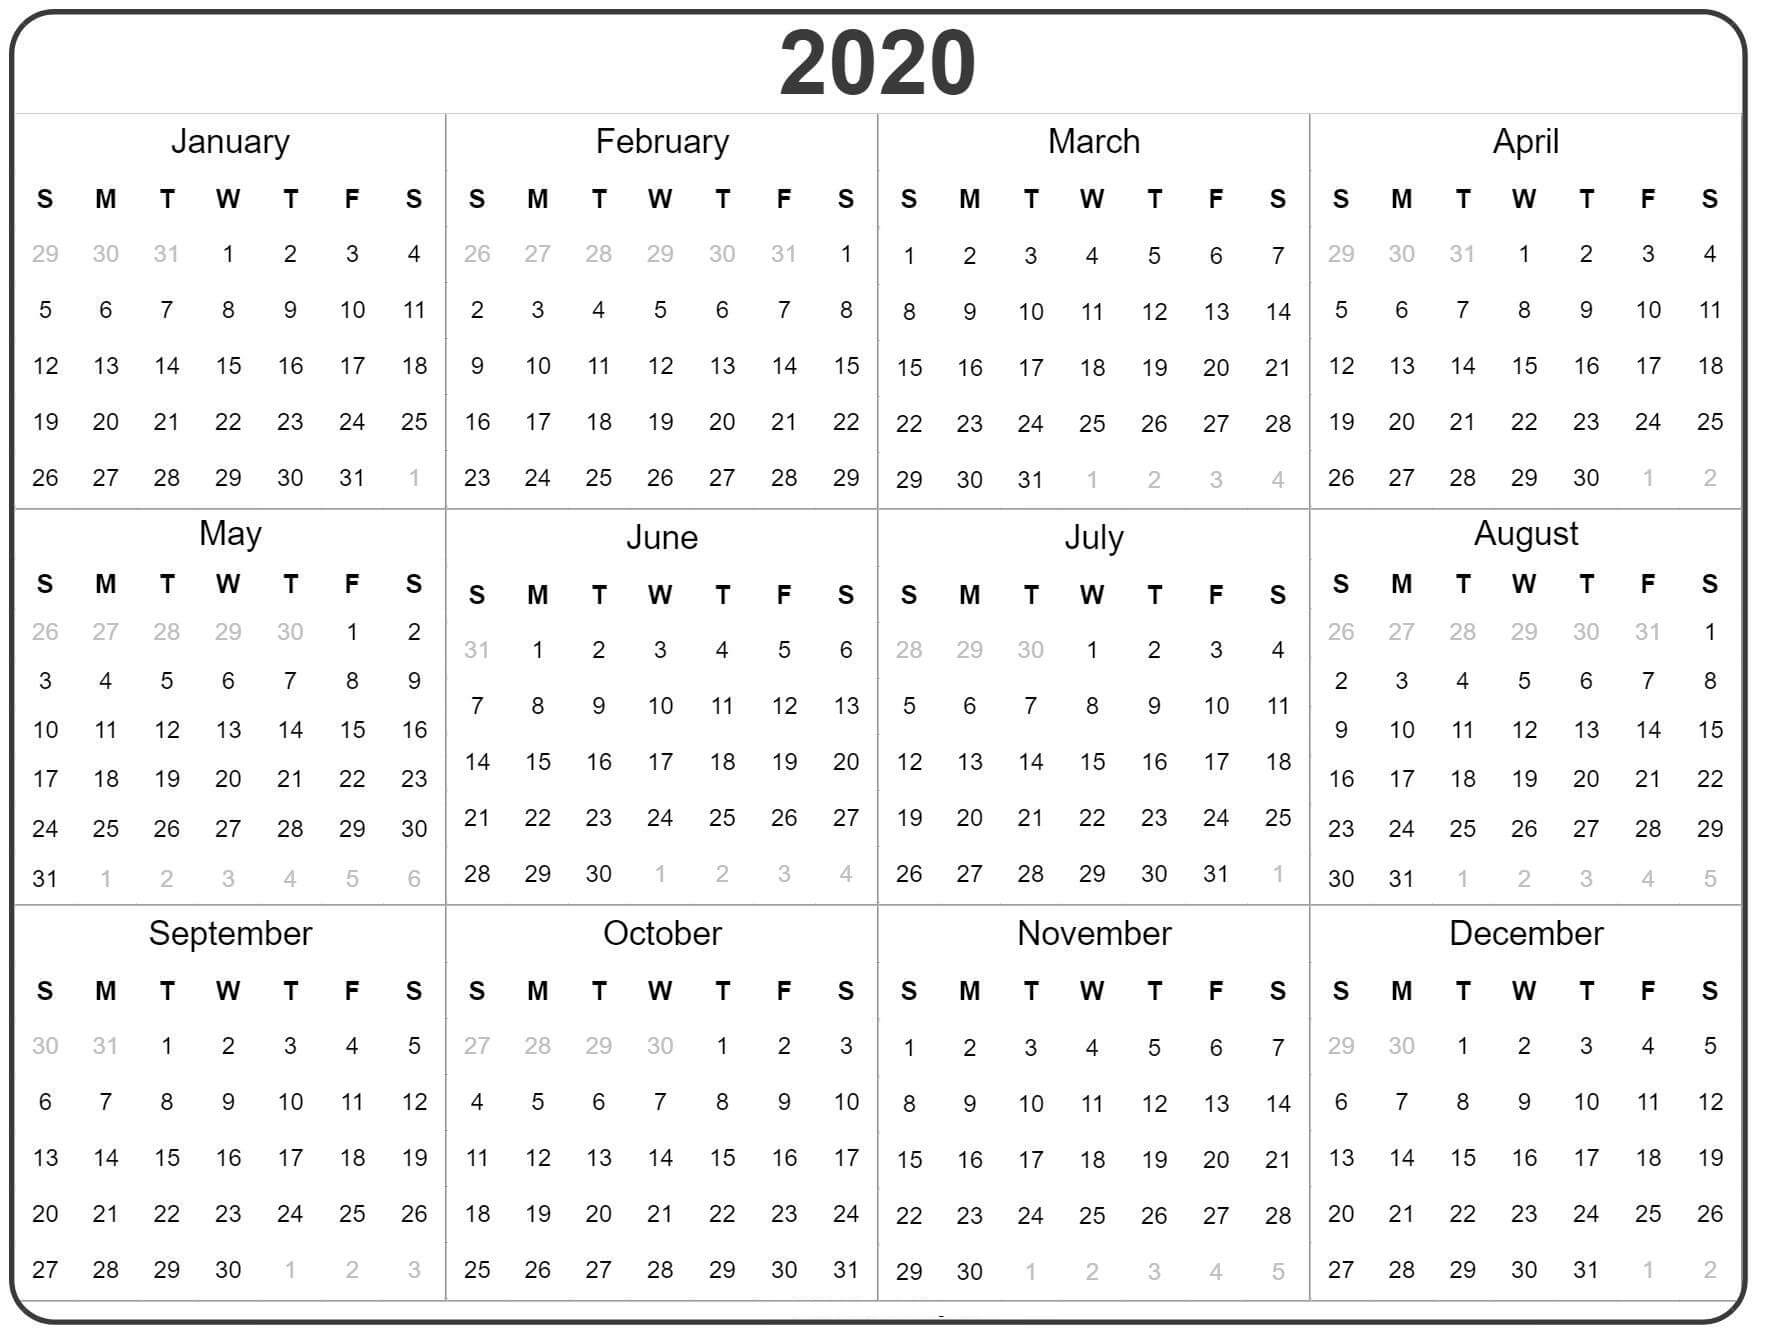 Free Yearly Calendar 2020 With Notes - 2019 Calendars For inside At A Glance Calendar 2020